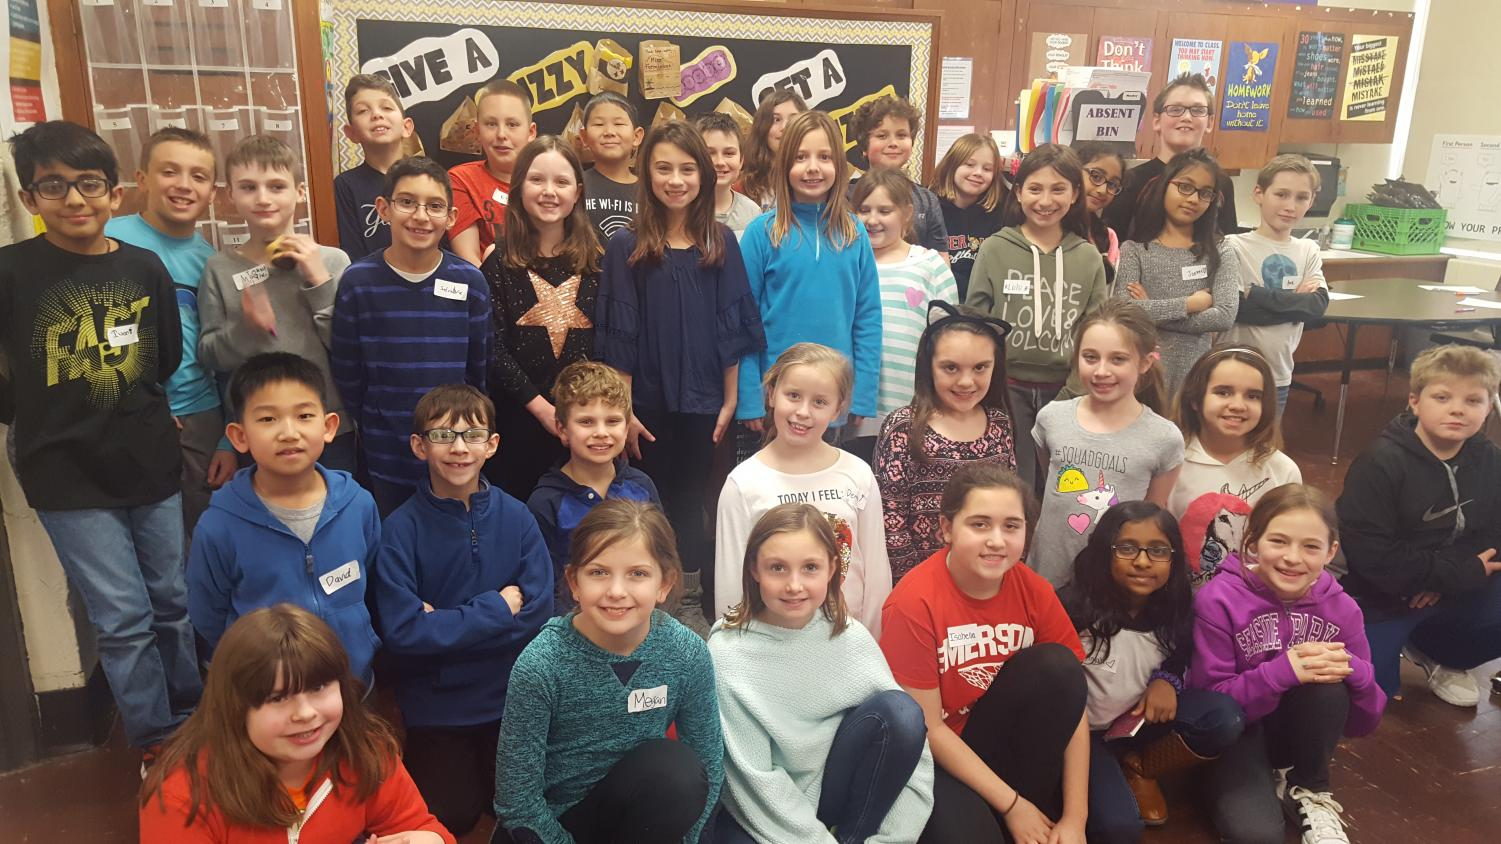 Third and fourth graders at Patrick M. Villano School in Emerson, NJ, met for the second time on Tuesday, March 13, 2018, as part of The Villano View newspaper club. Members write and take photos and video for the online newspaper which started this year.